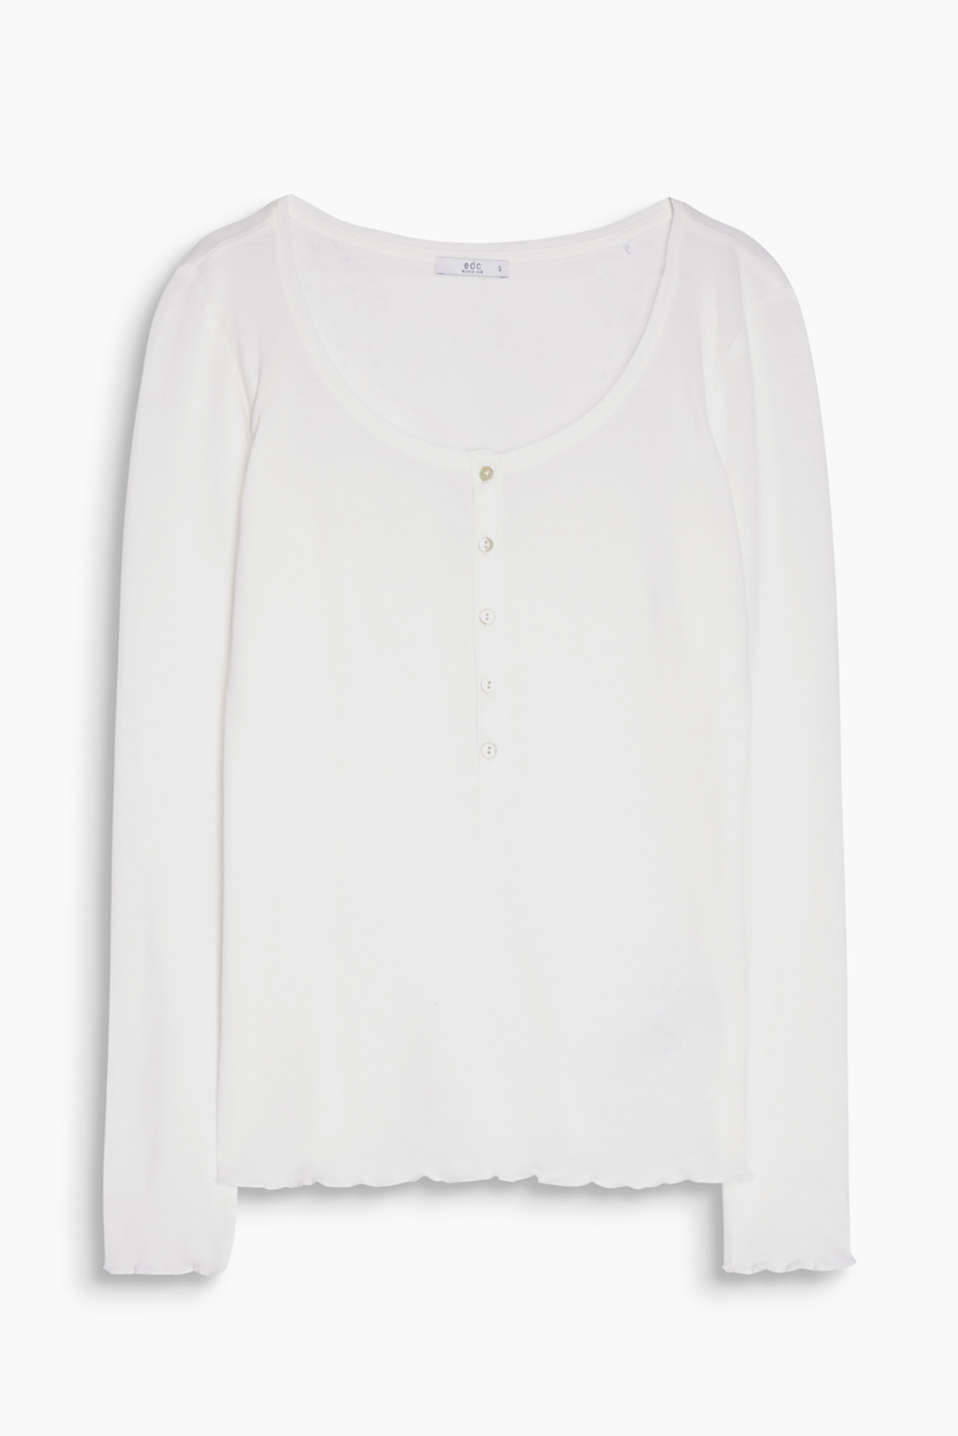 A lightweight, flowing, long sleeve henley top in blended cotton with ruched edges